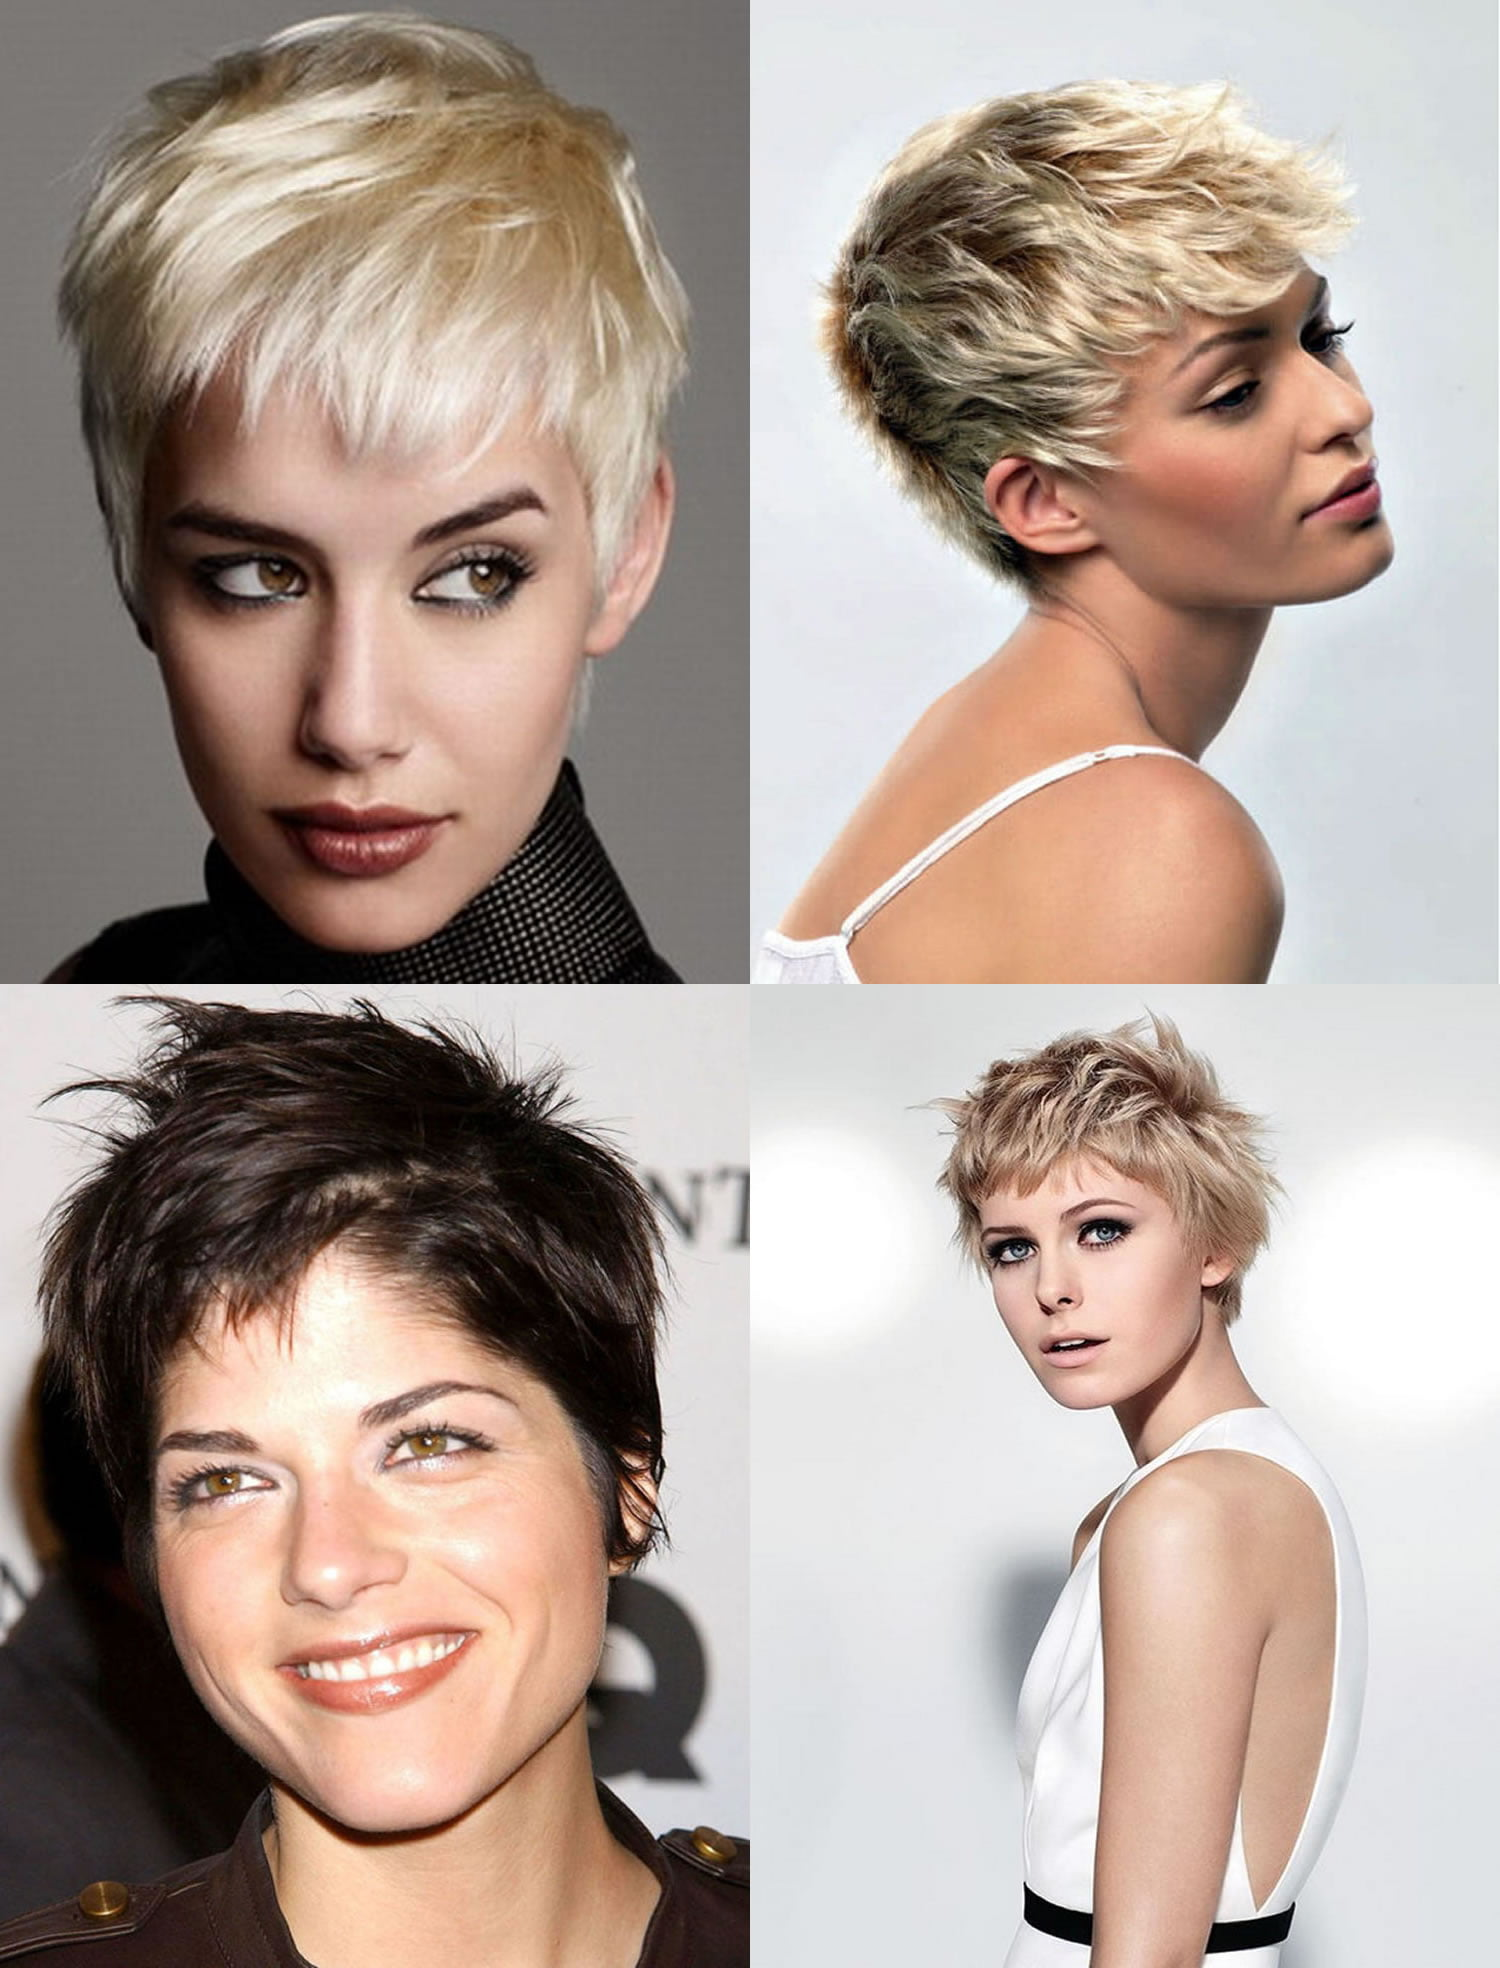 haircut for diamond shaped face 33 hairstyles for shape 5056 | Attractive 2017 Pixie Hairstyles for Diamond Face Shape